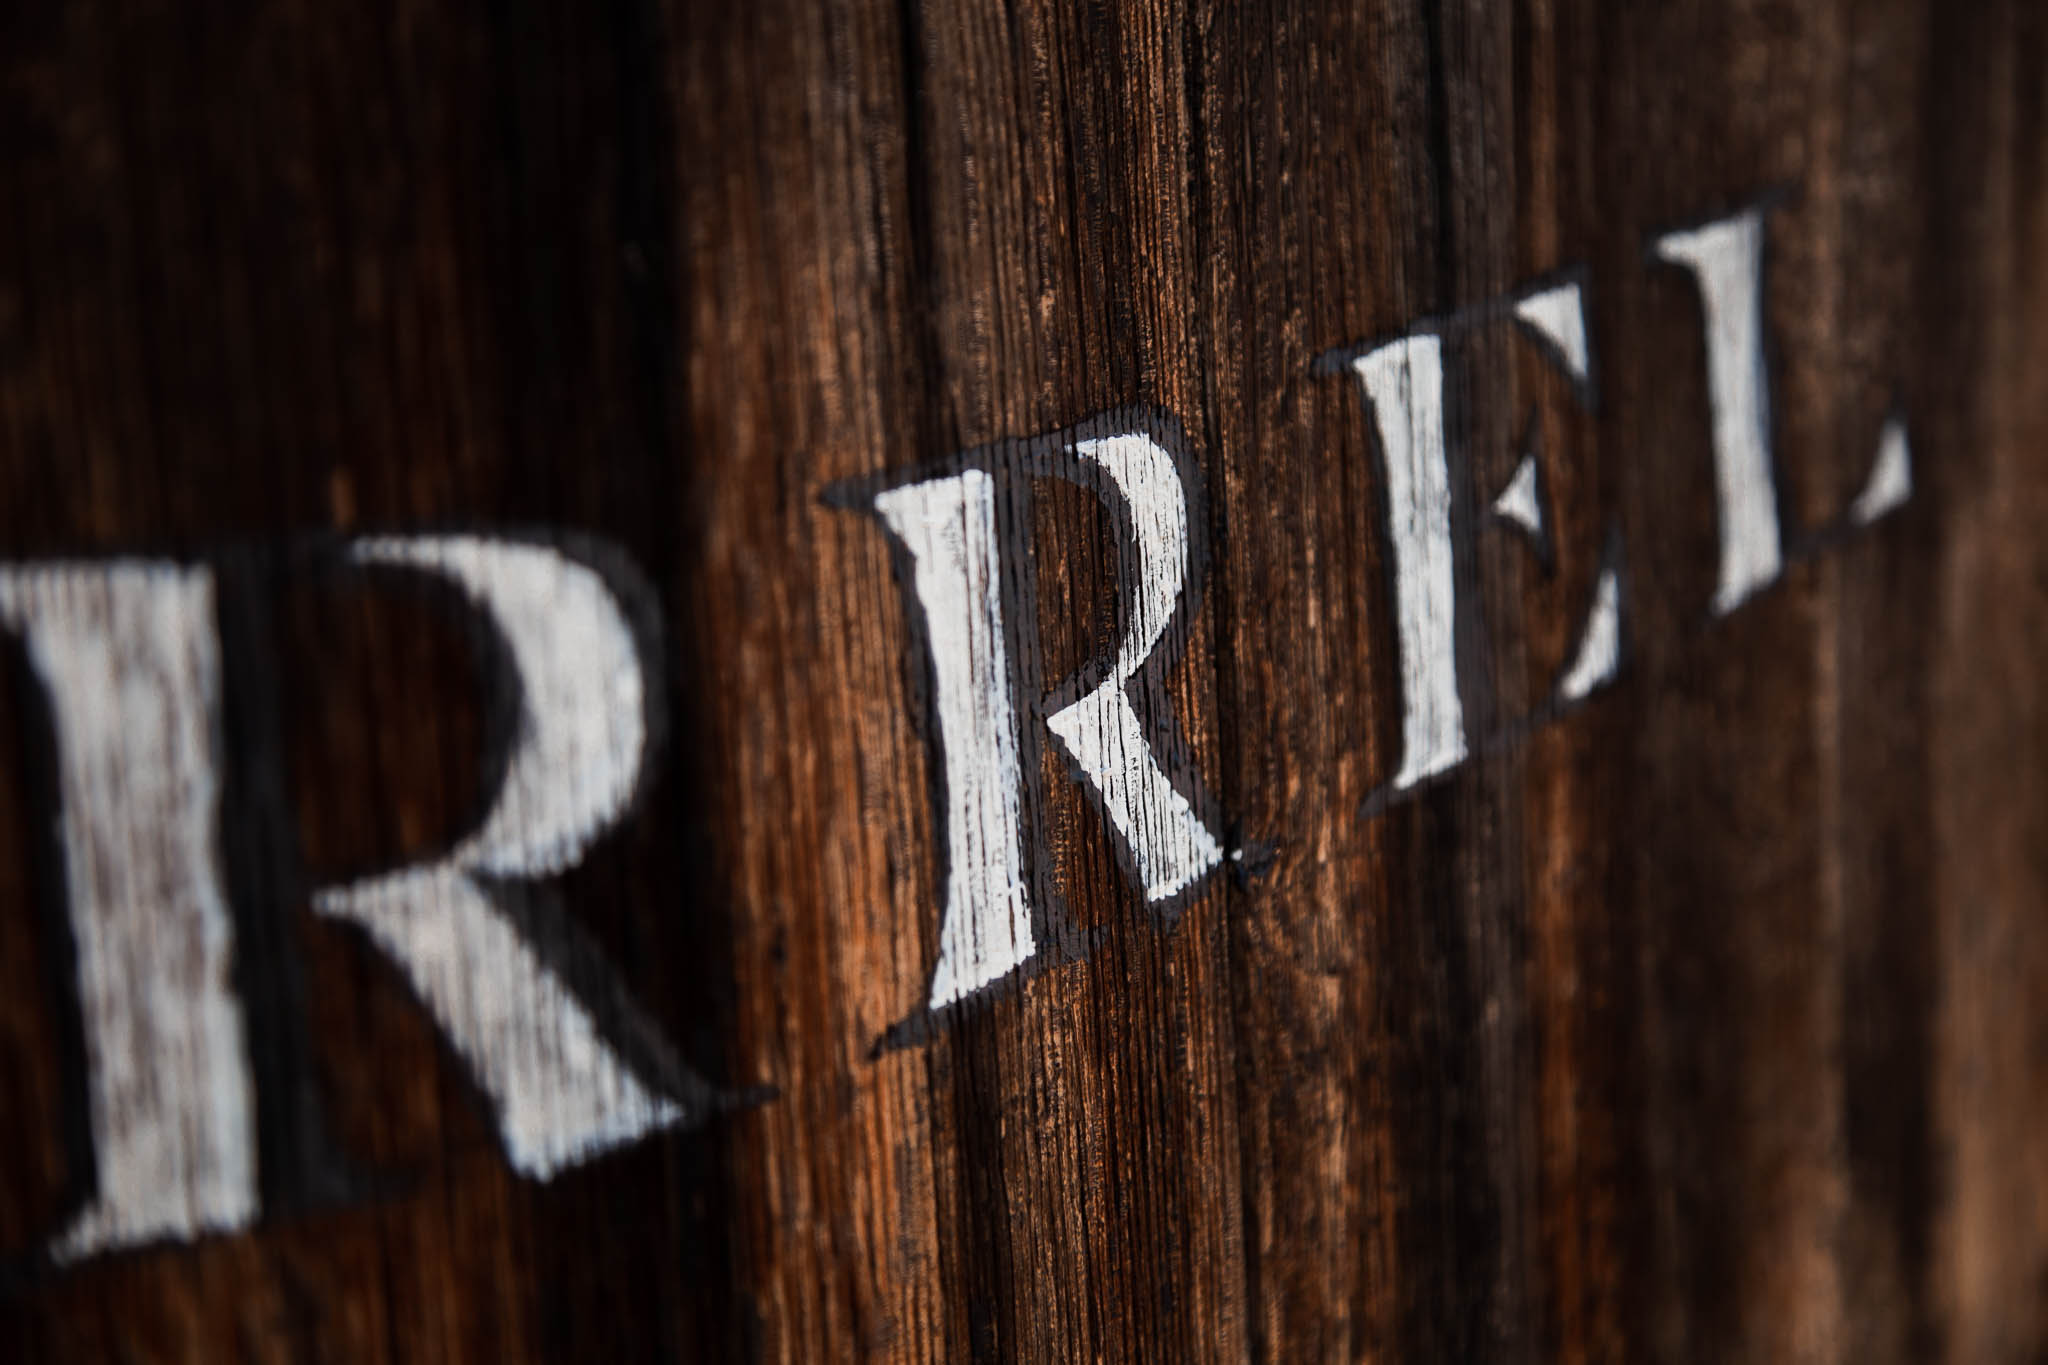 Details of Hand painted Barrel used as Hand Lettered Signage for San Diego Winery